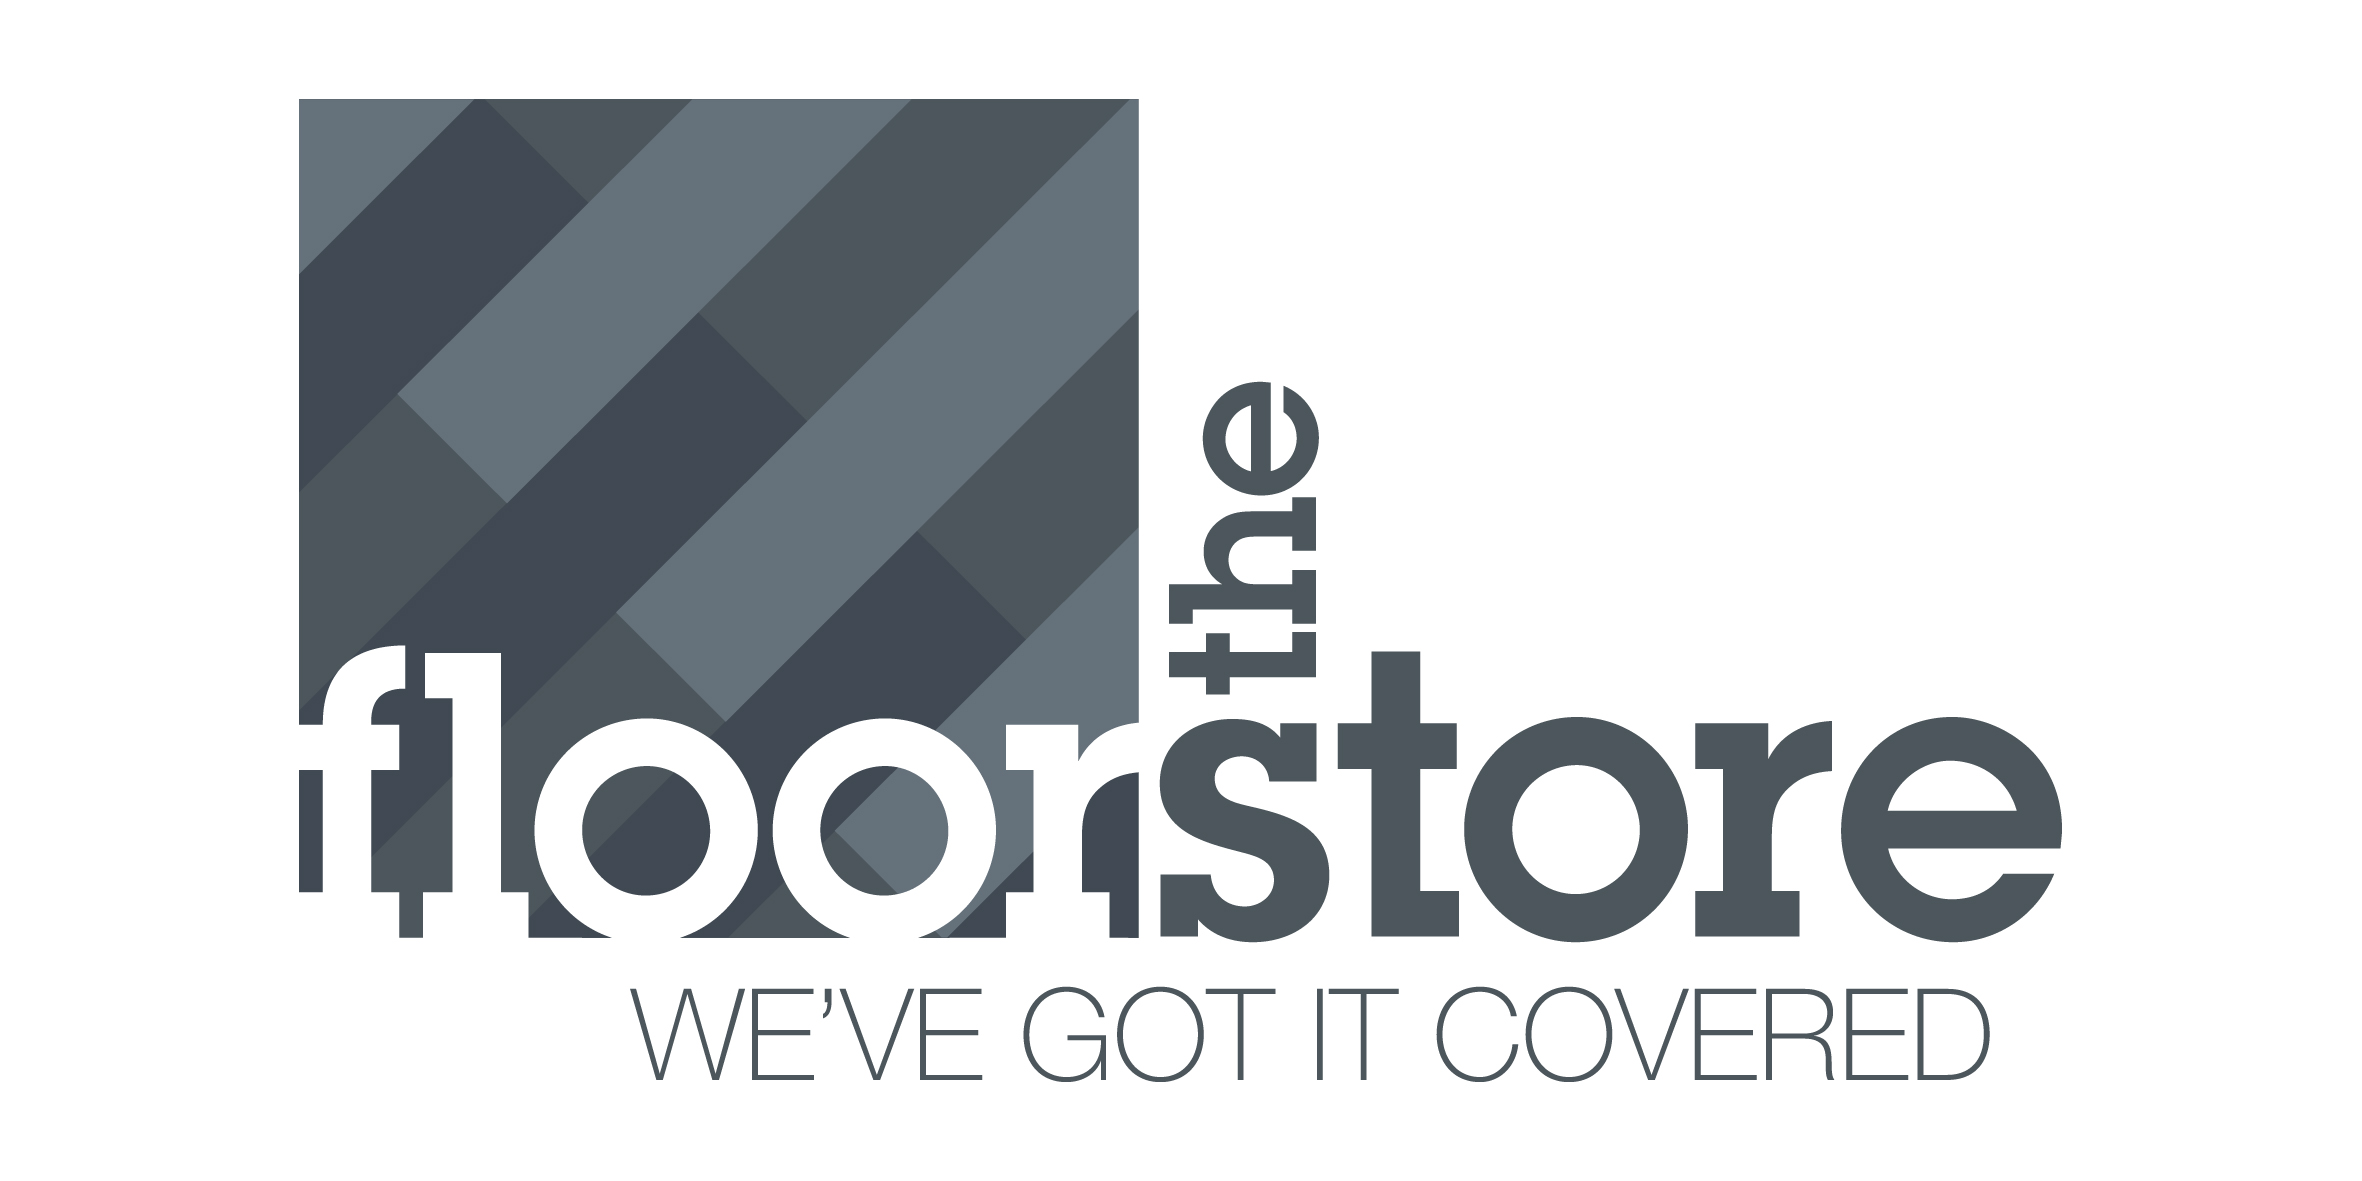 http://quicklinestorage.co.uk/wp-content/uploads/2016/04/FloorStoreLogo.jpg